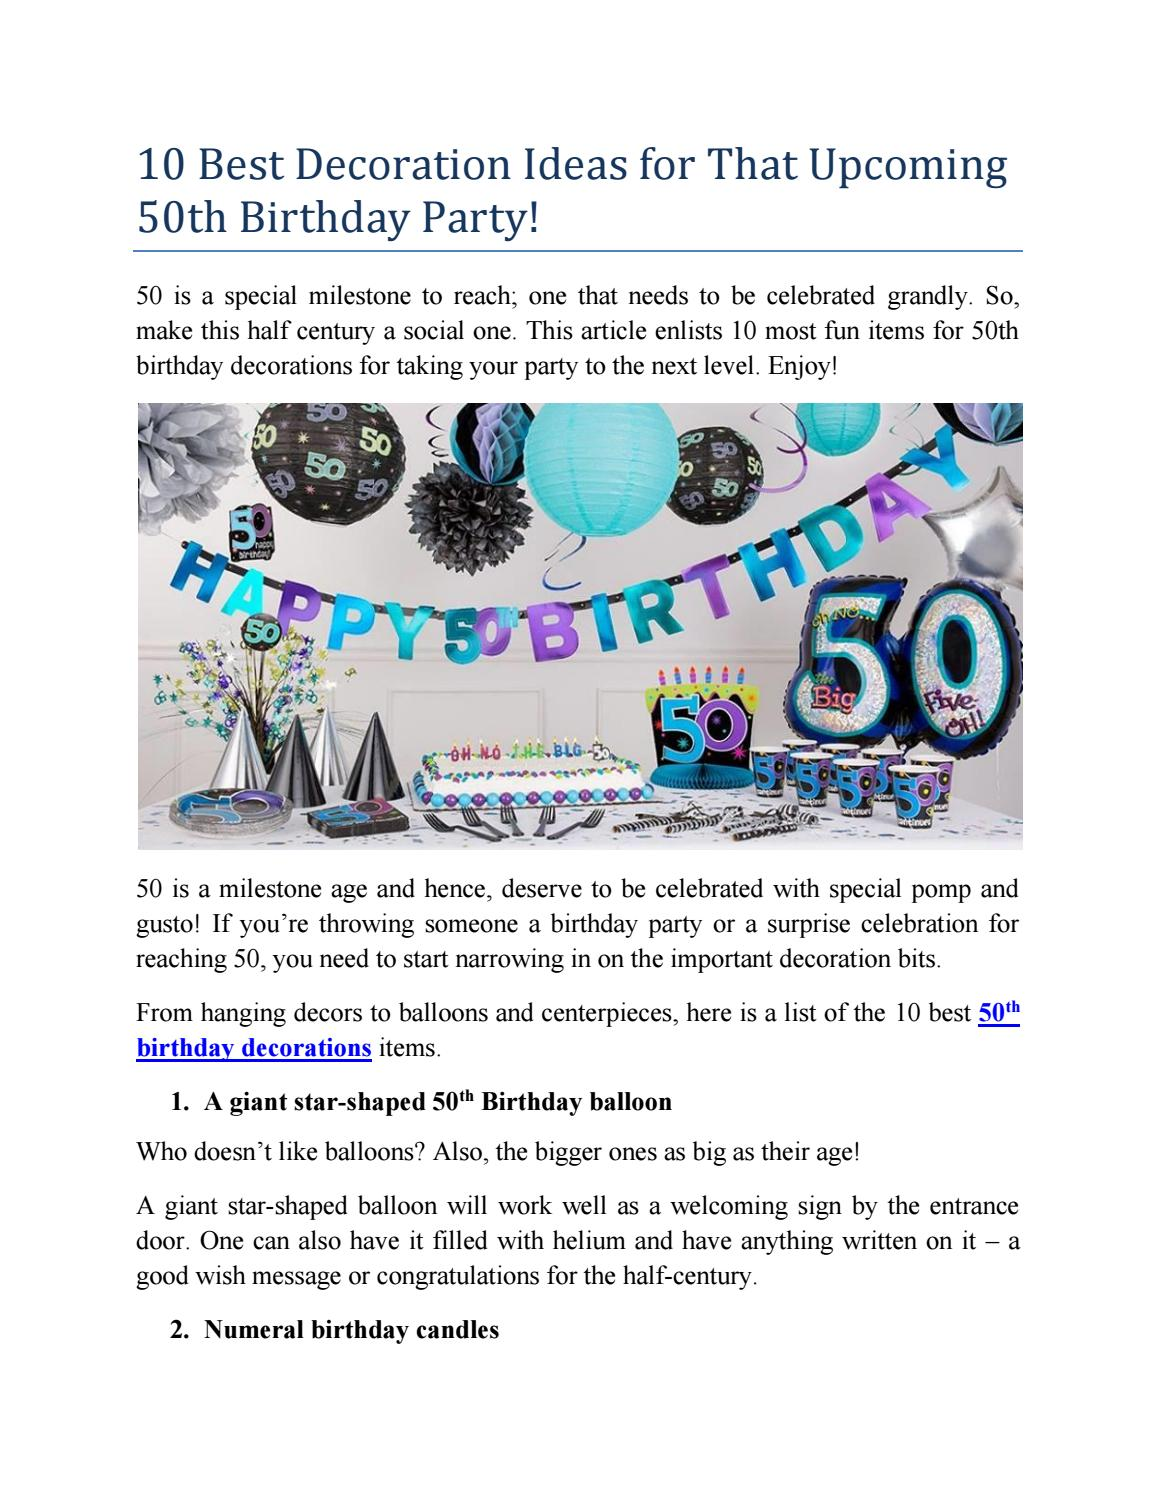 10 Best Decoration Ideas For That Upcoming 50th Birthday Party